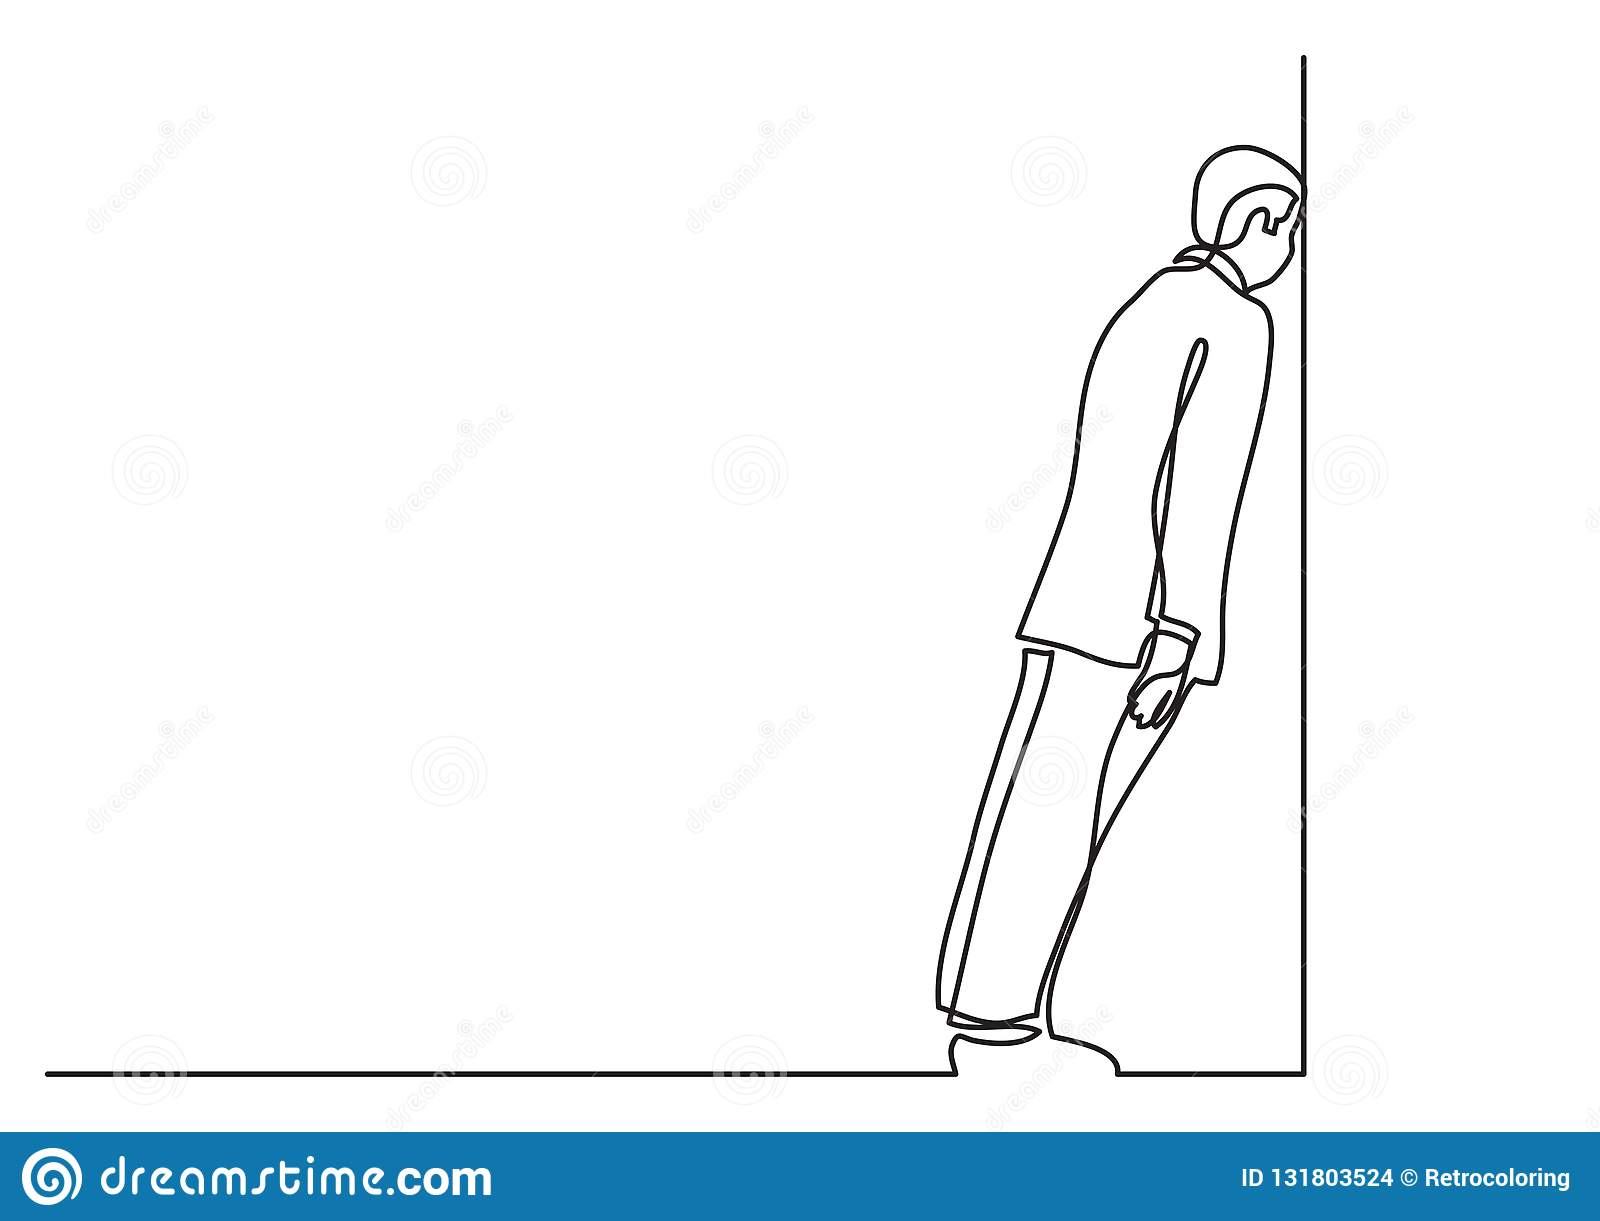 Continuous line drawing of business situation - man stuck in dead end job